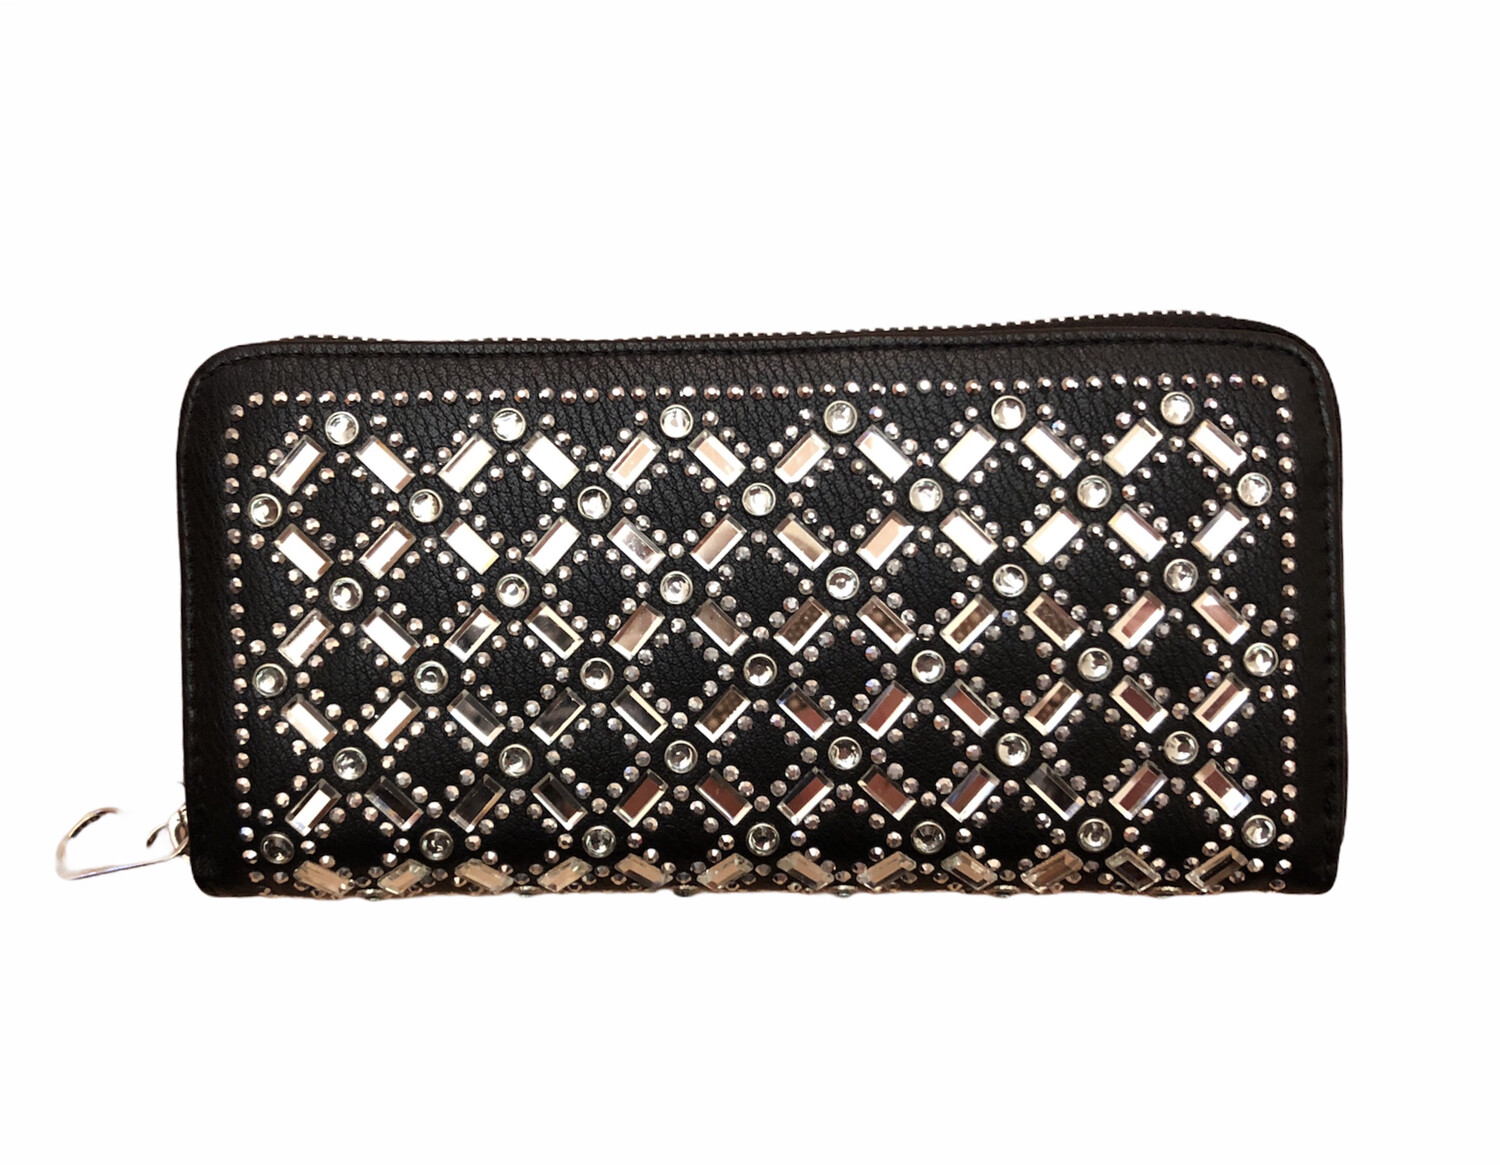 Crystal X & O's 3 Section Wallet